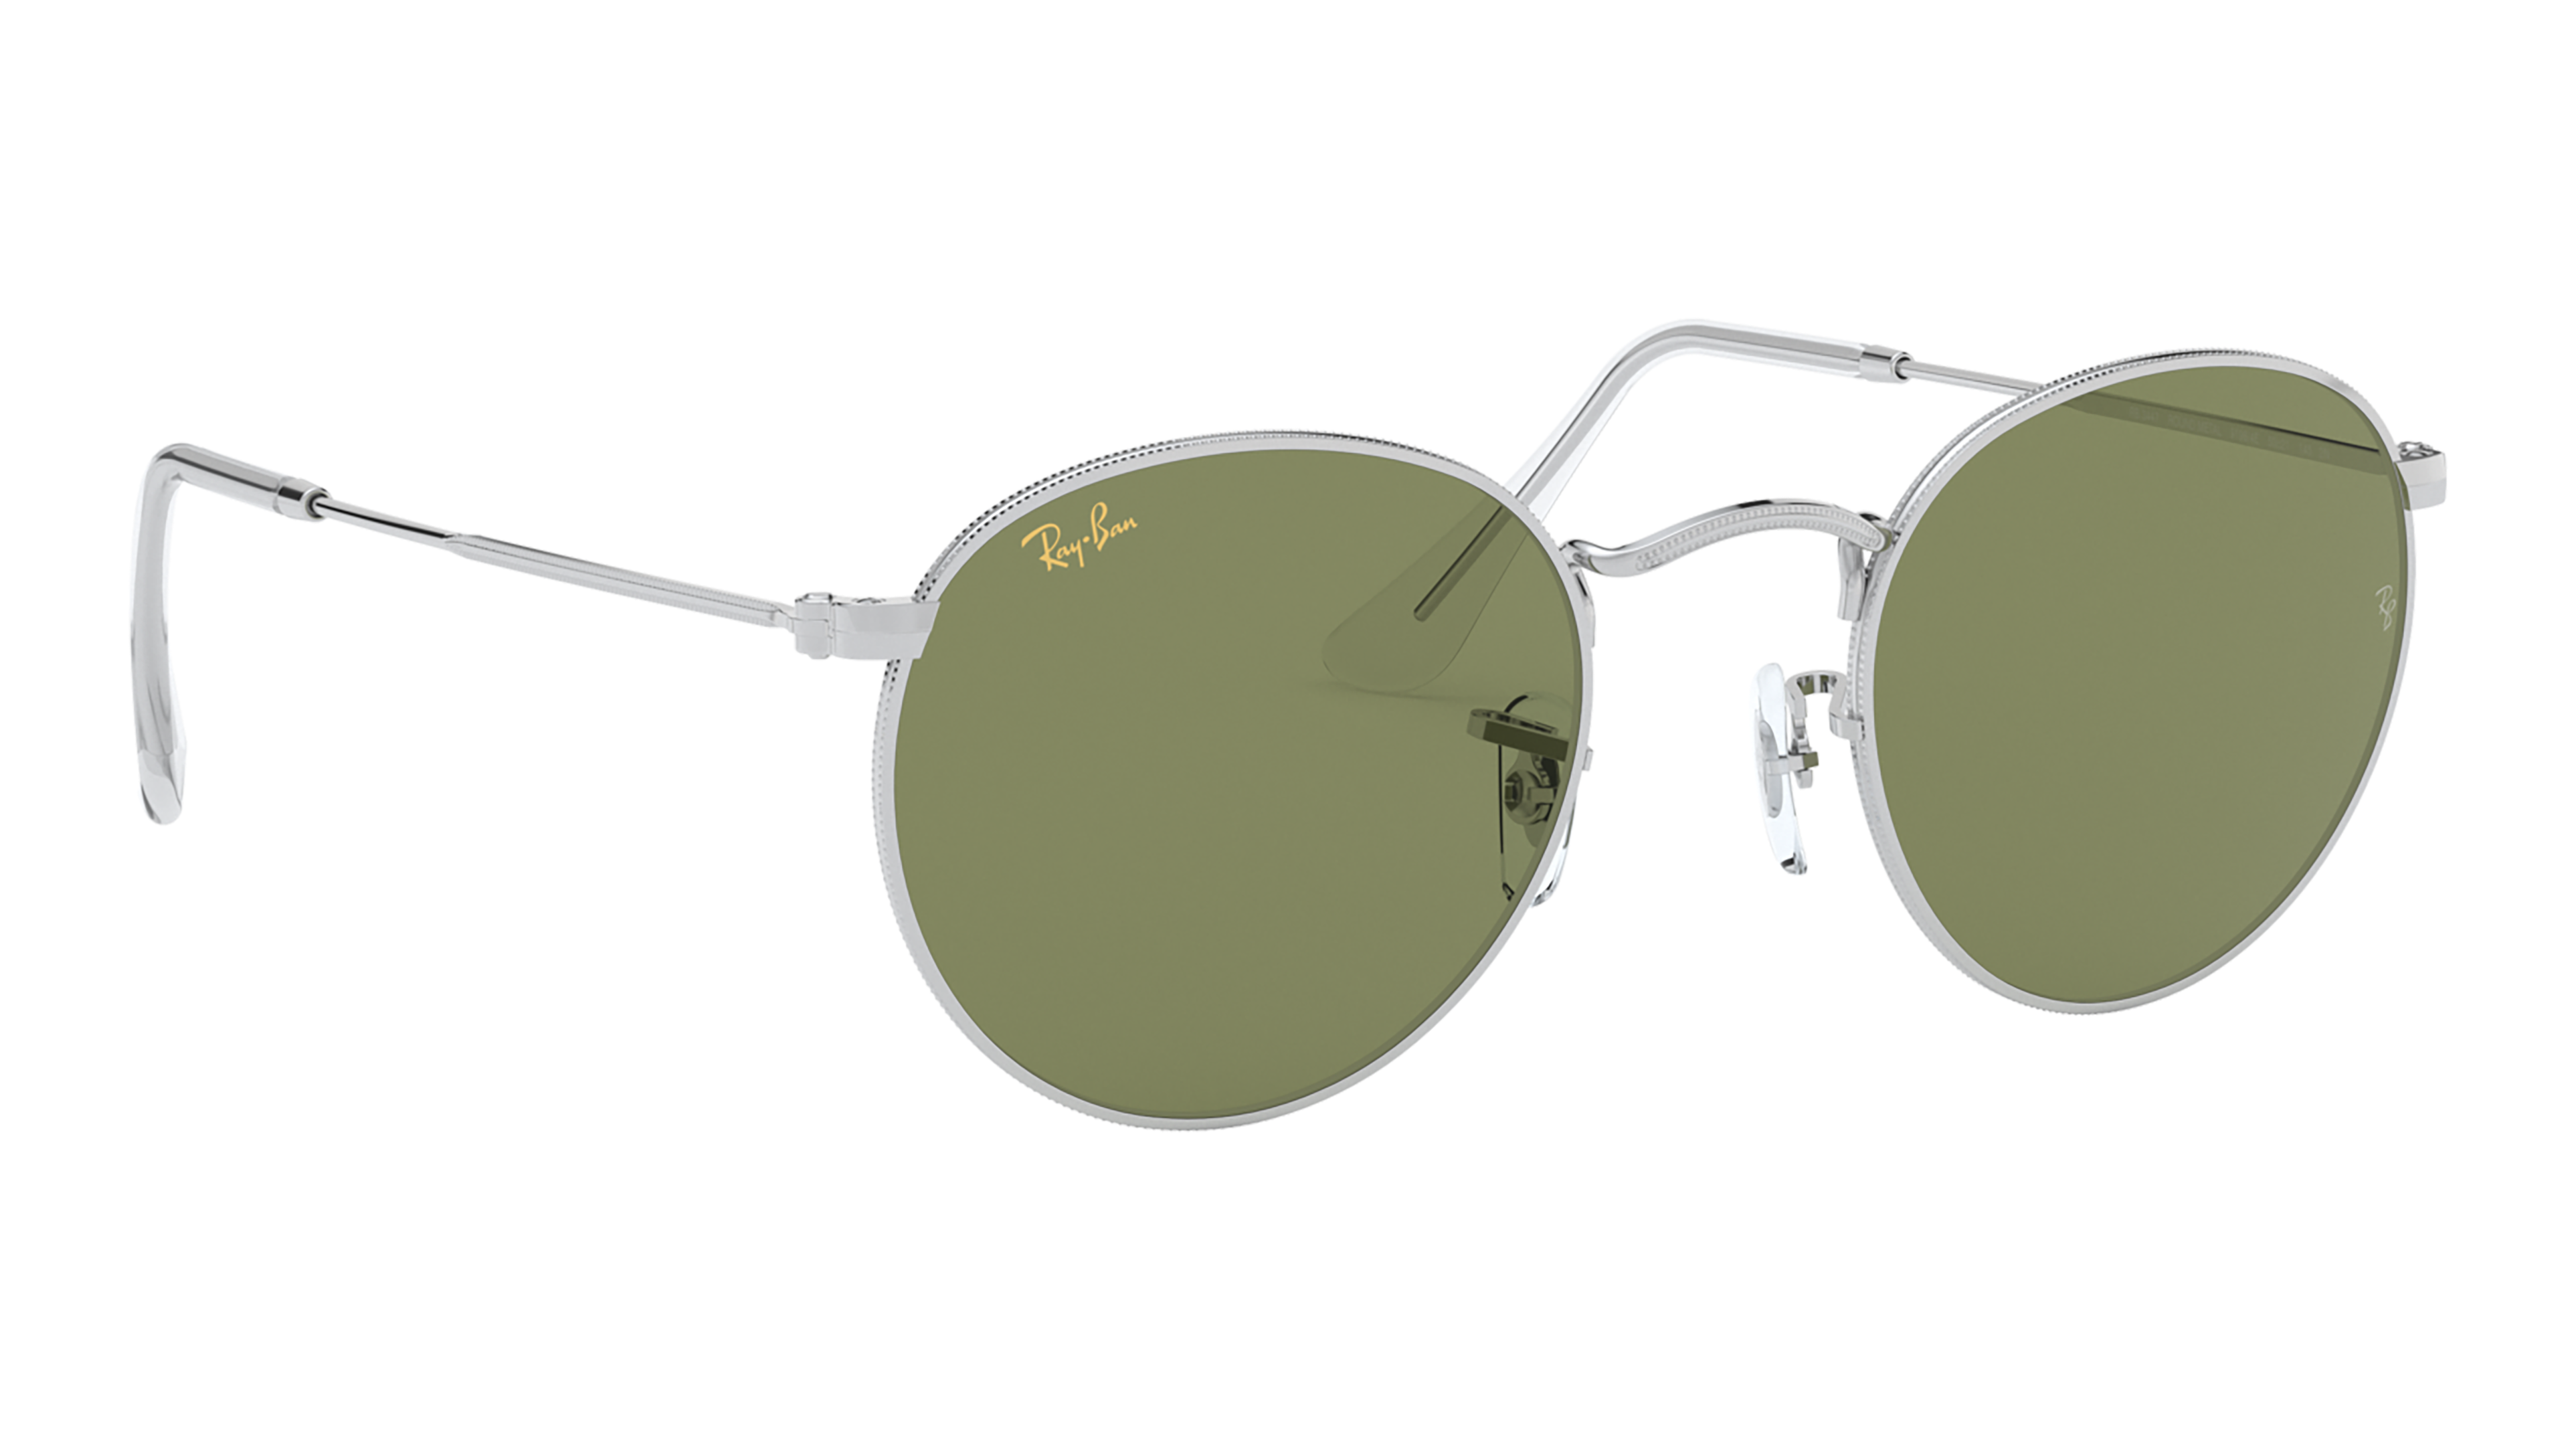 Angle_Right02 Ray-Ban Ray-Ban 0RB3447 91984E 53/21 Zilver/Groen